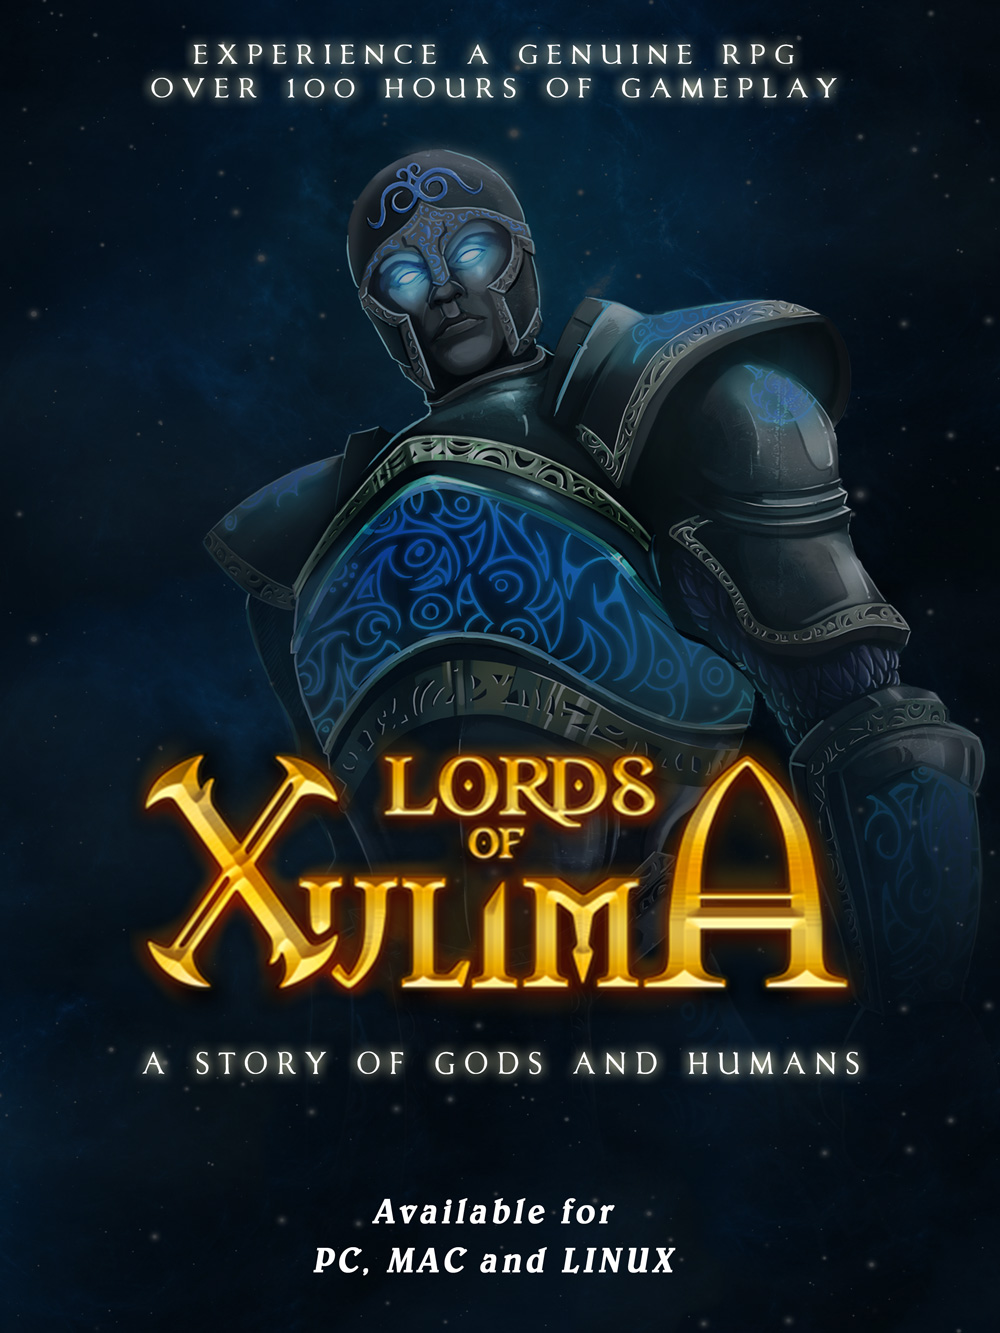 Lords of Xulima Numantian Games Logo